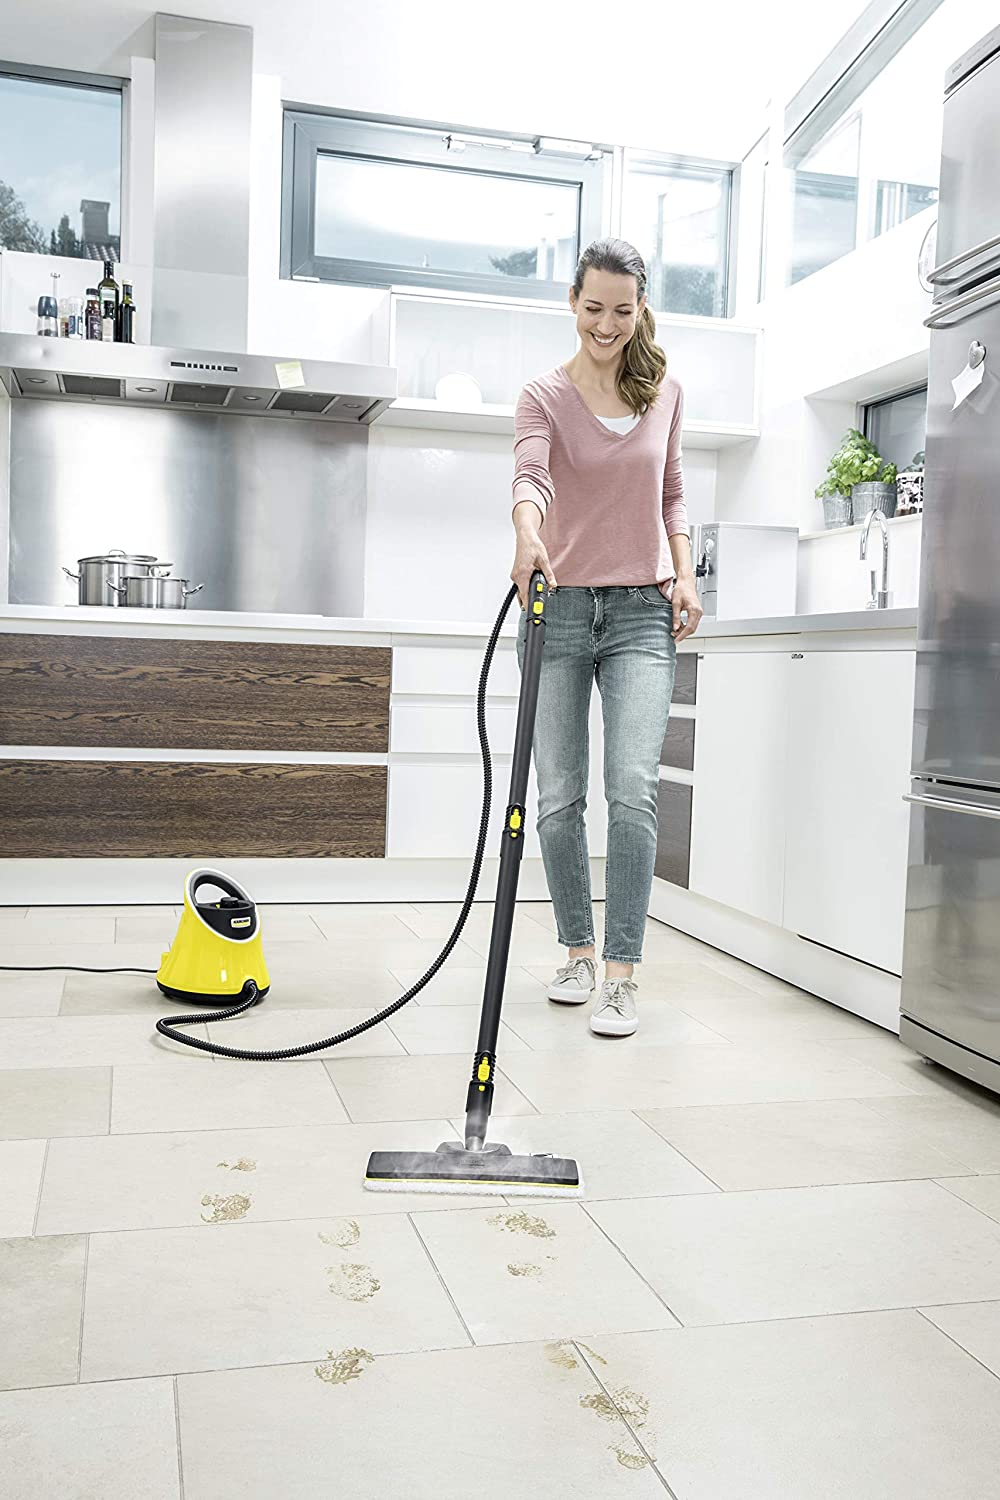 Karcher (KAER5) 1.513 243.0 Steam Cleaner, 1500 Watt, SC 2 Deluxe Easyfix:  Amazon.co.uk: DIY & Tools